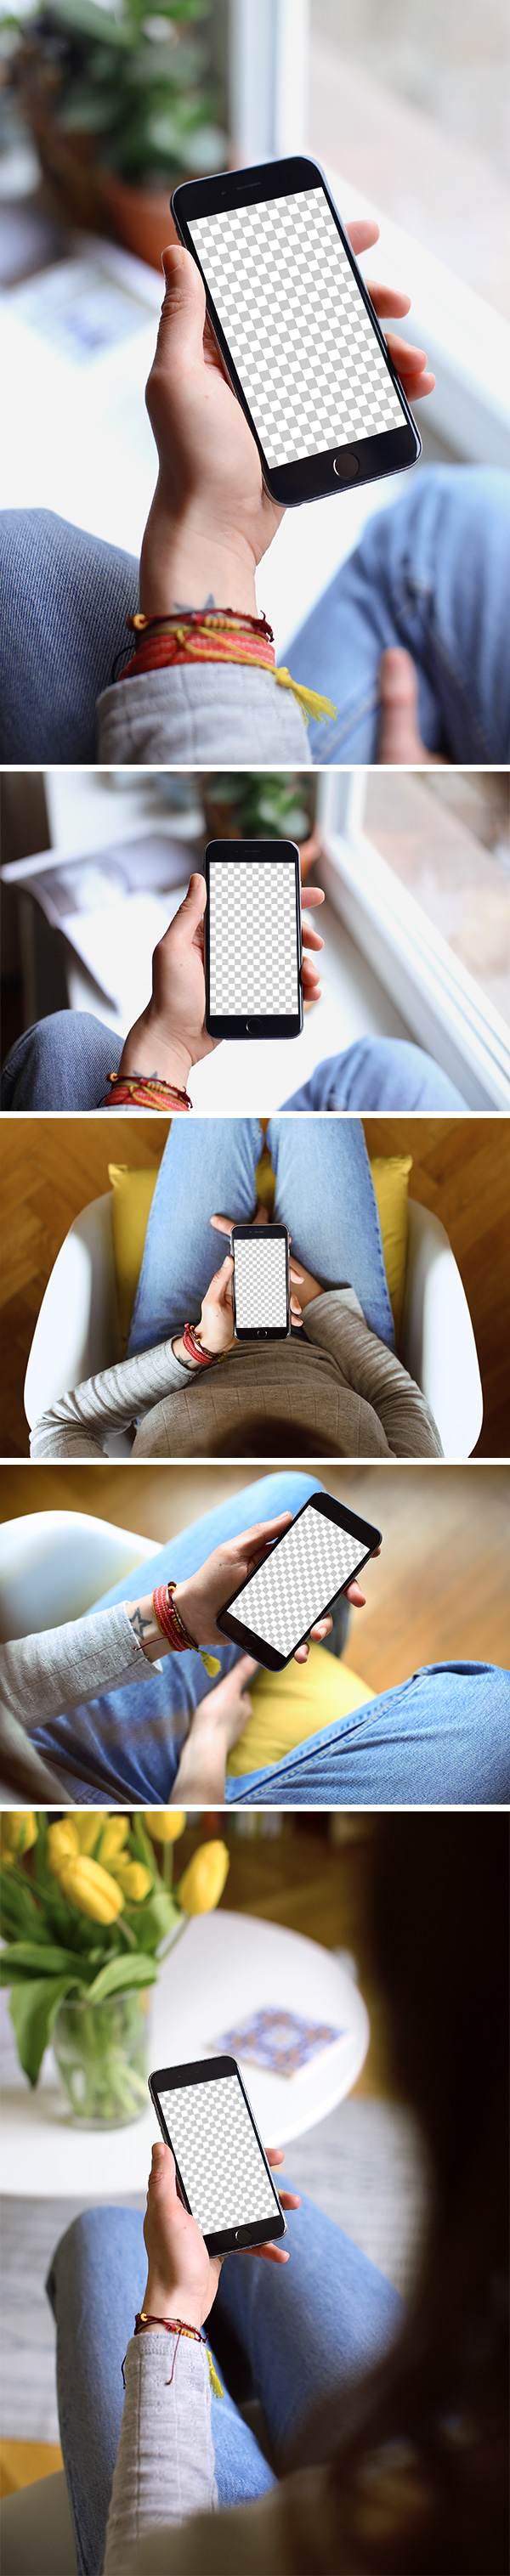 5x-iphone-6-in-hand-mockups